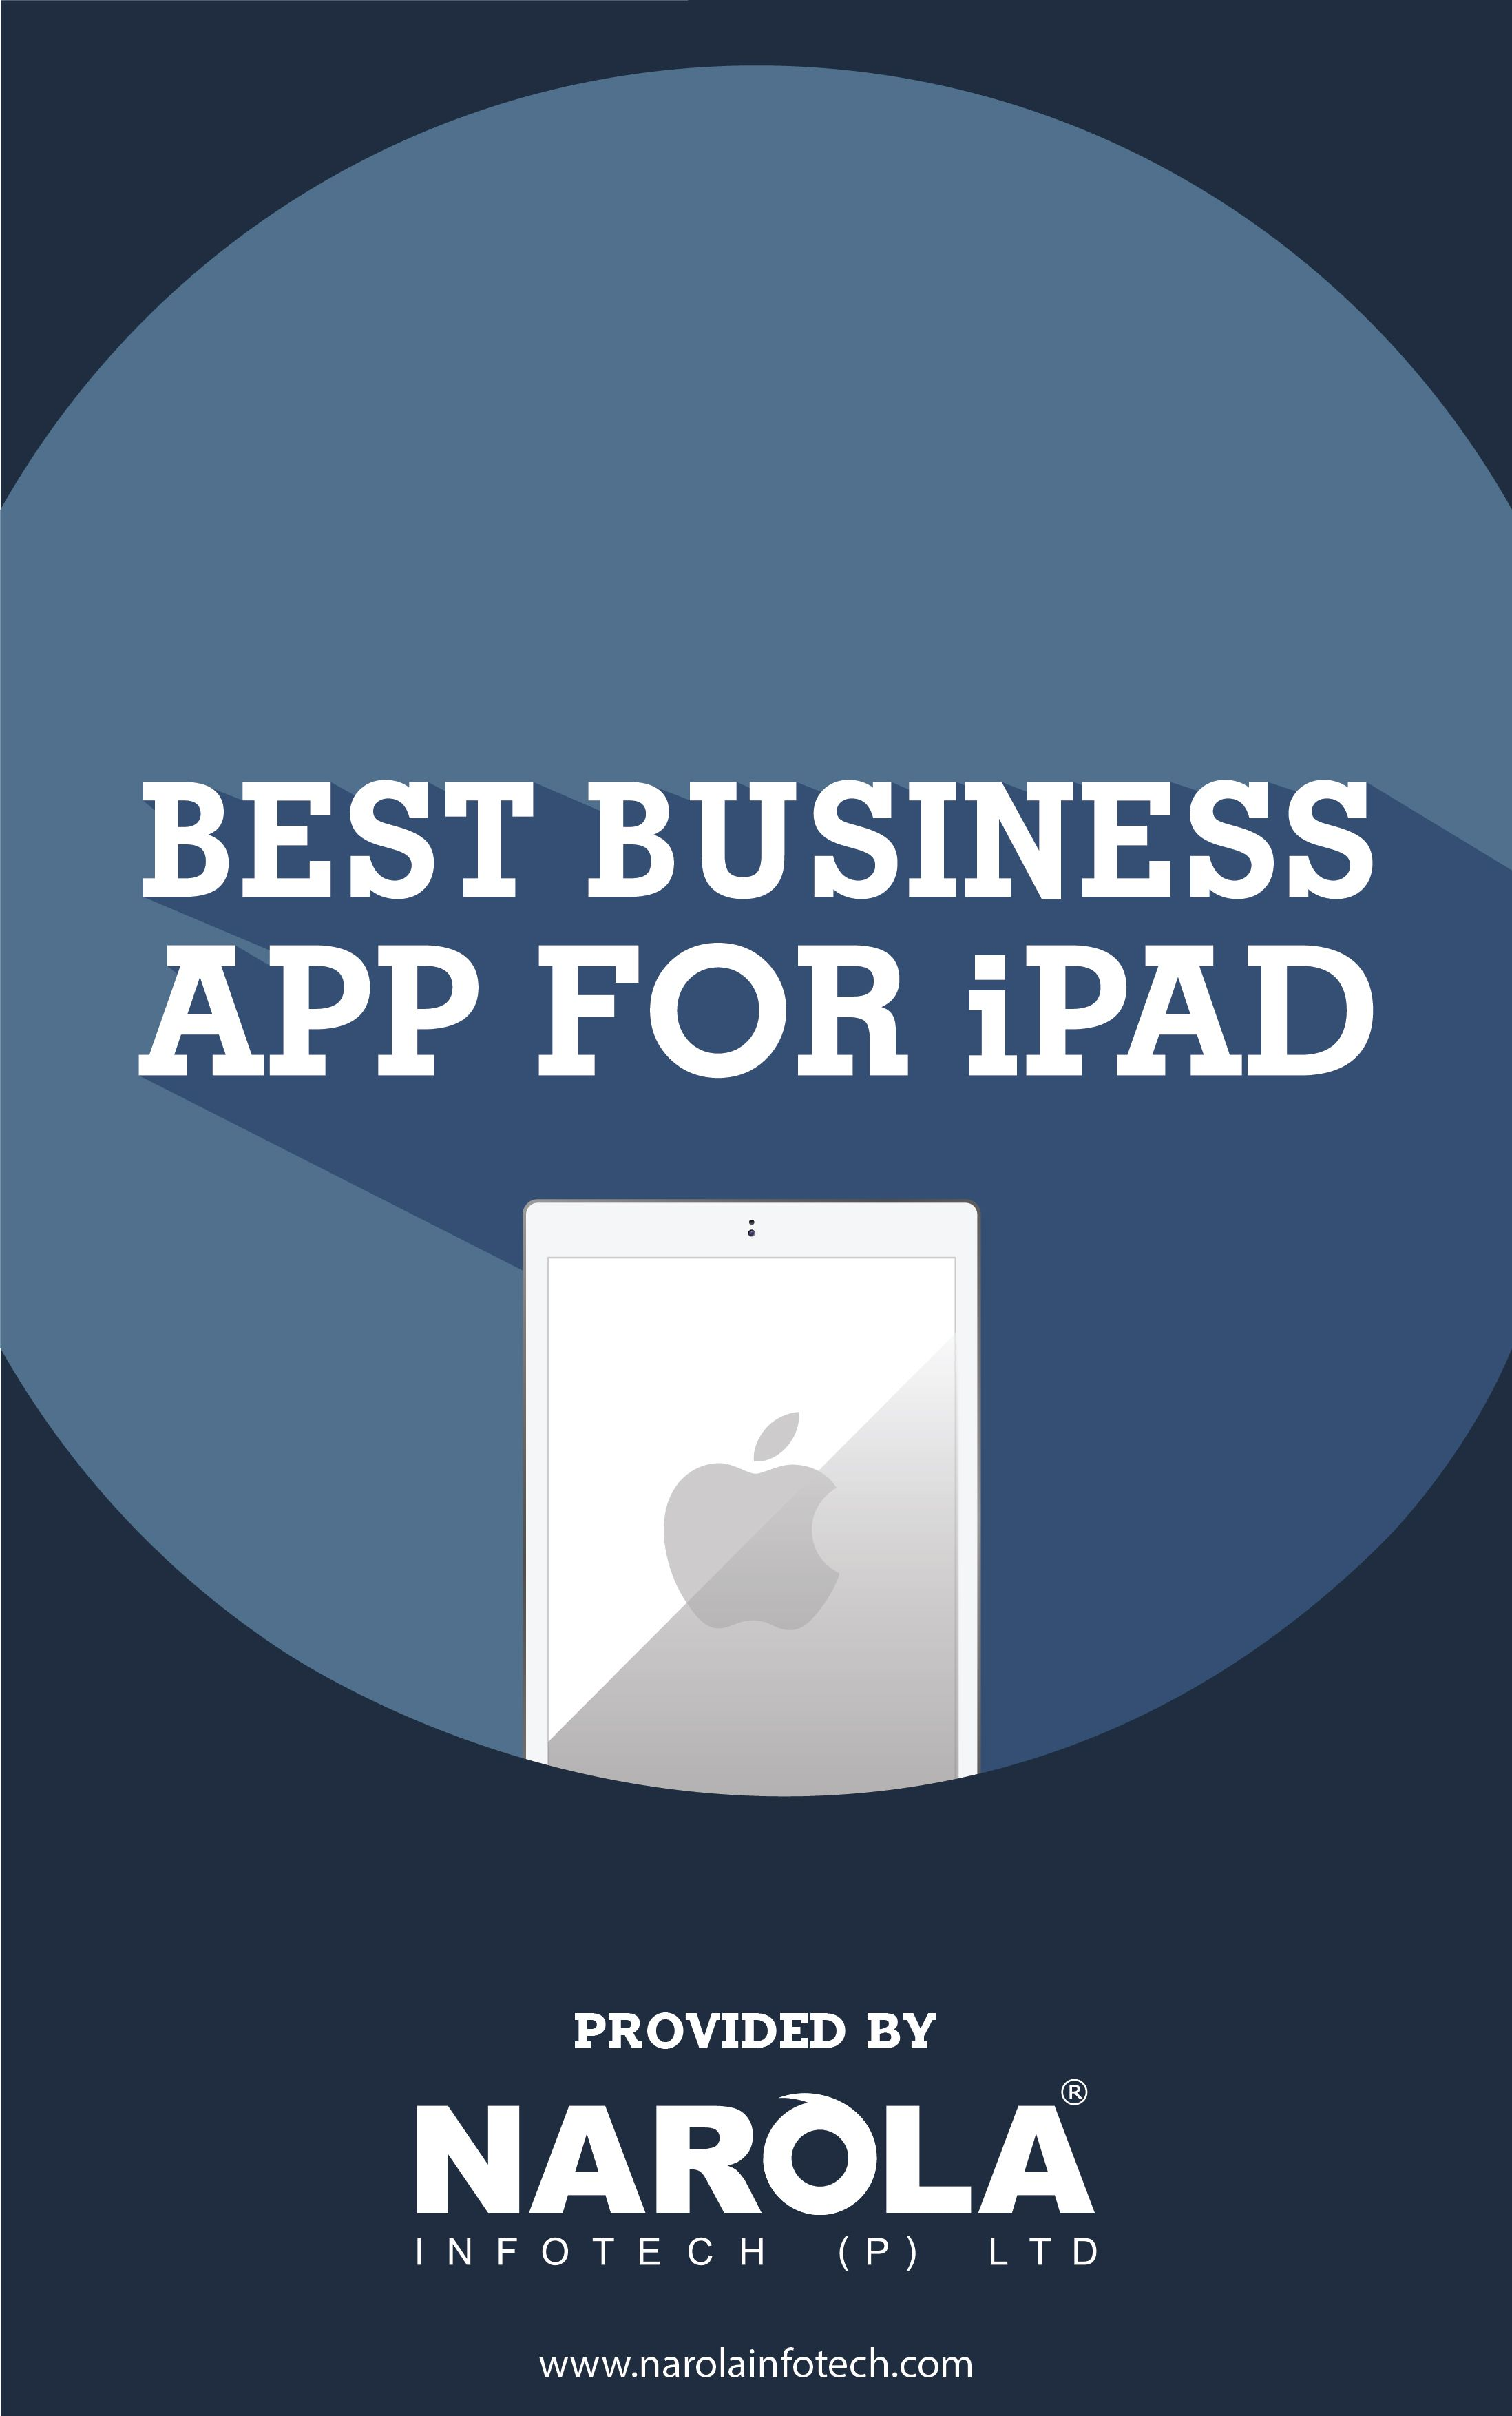 Learn about the Most Productive Biz Apps for iPad Ipad